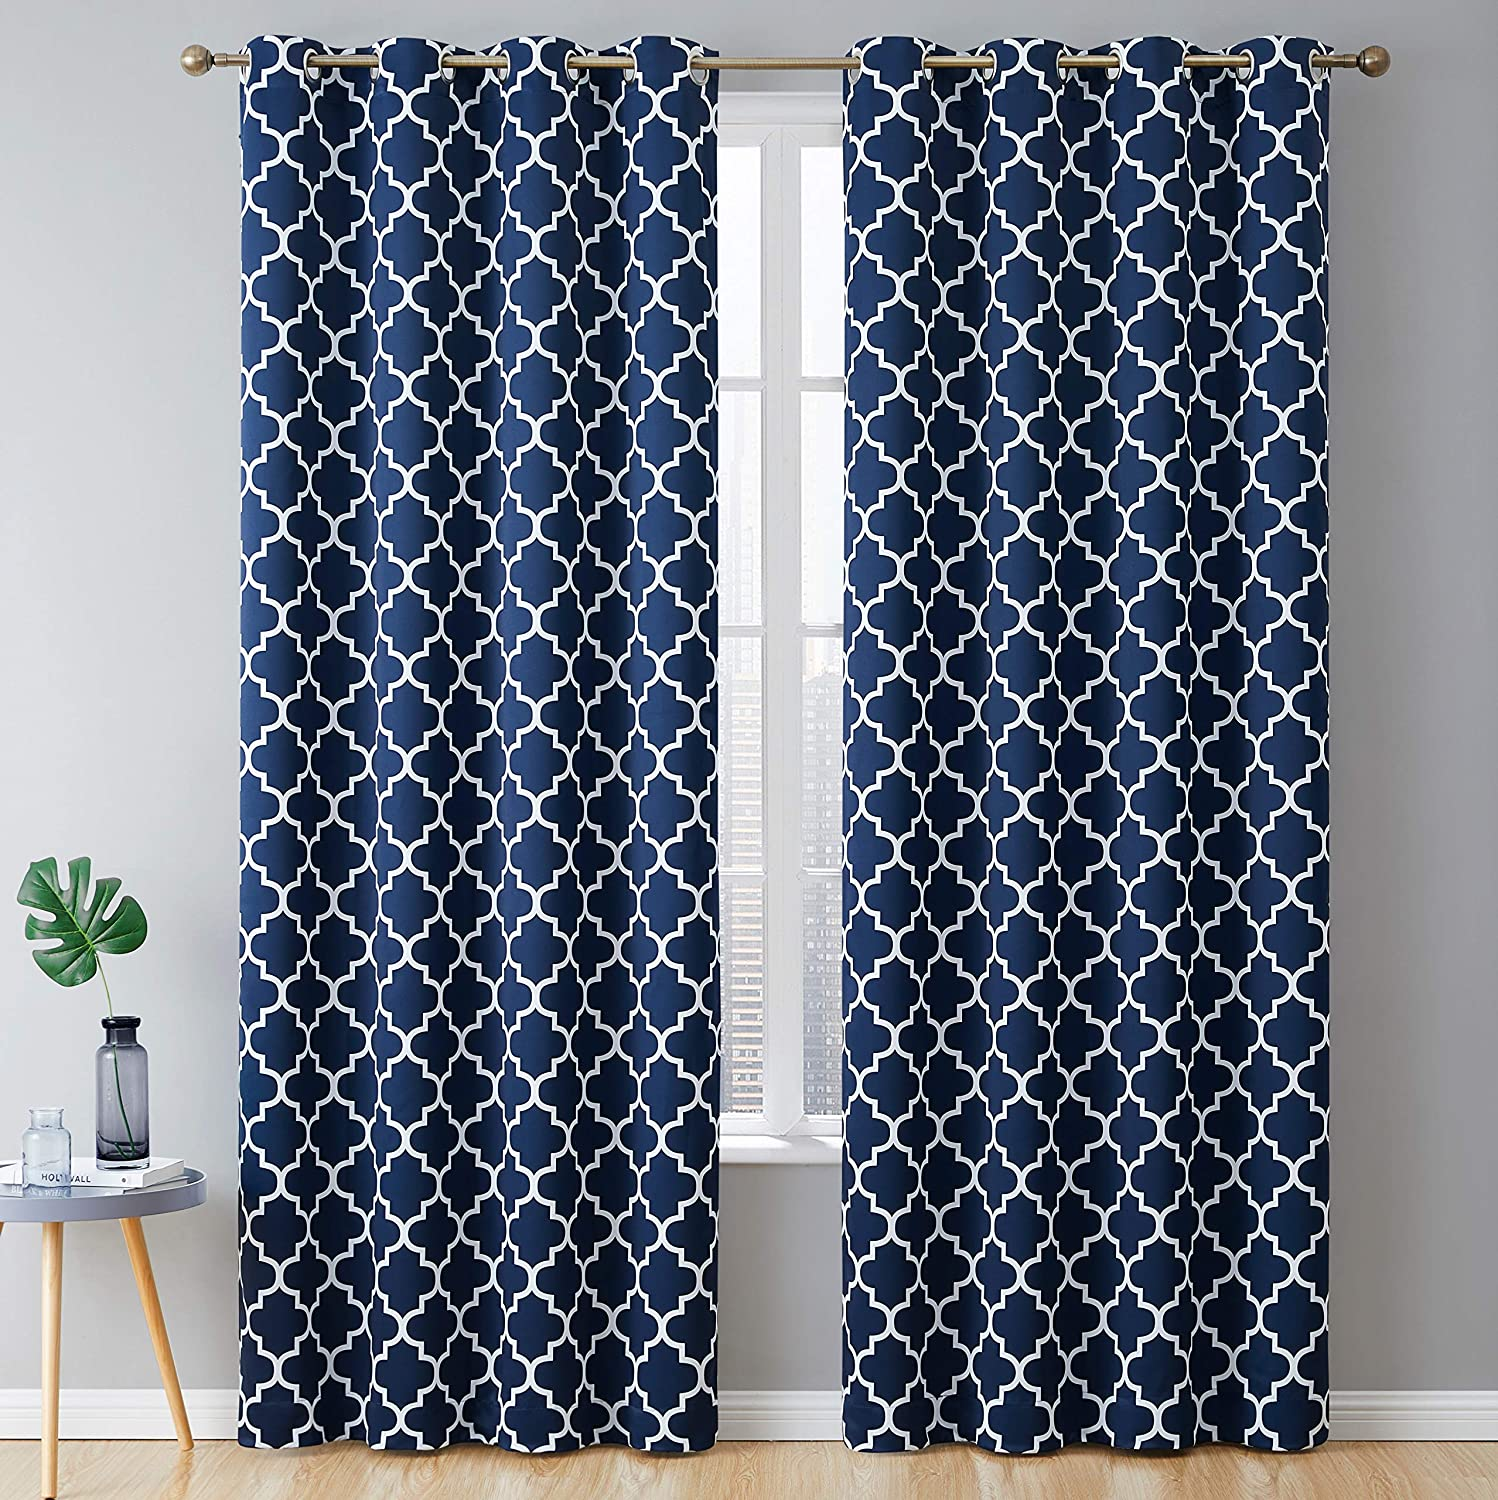 HLC.ME Lattice Print Thermal Max 78% OFF Insulated Blackout Heat OFFicial site Bedroom Abs